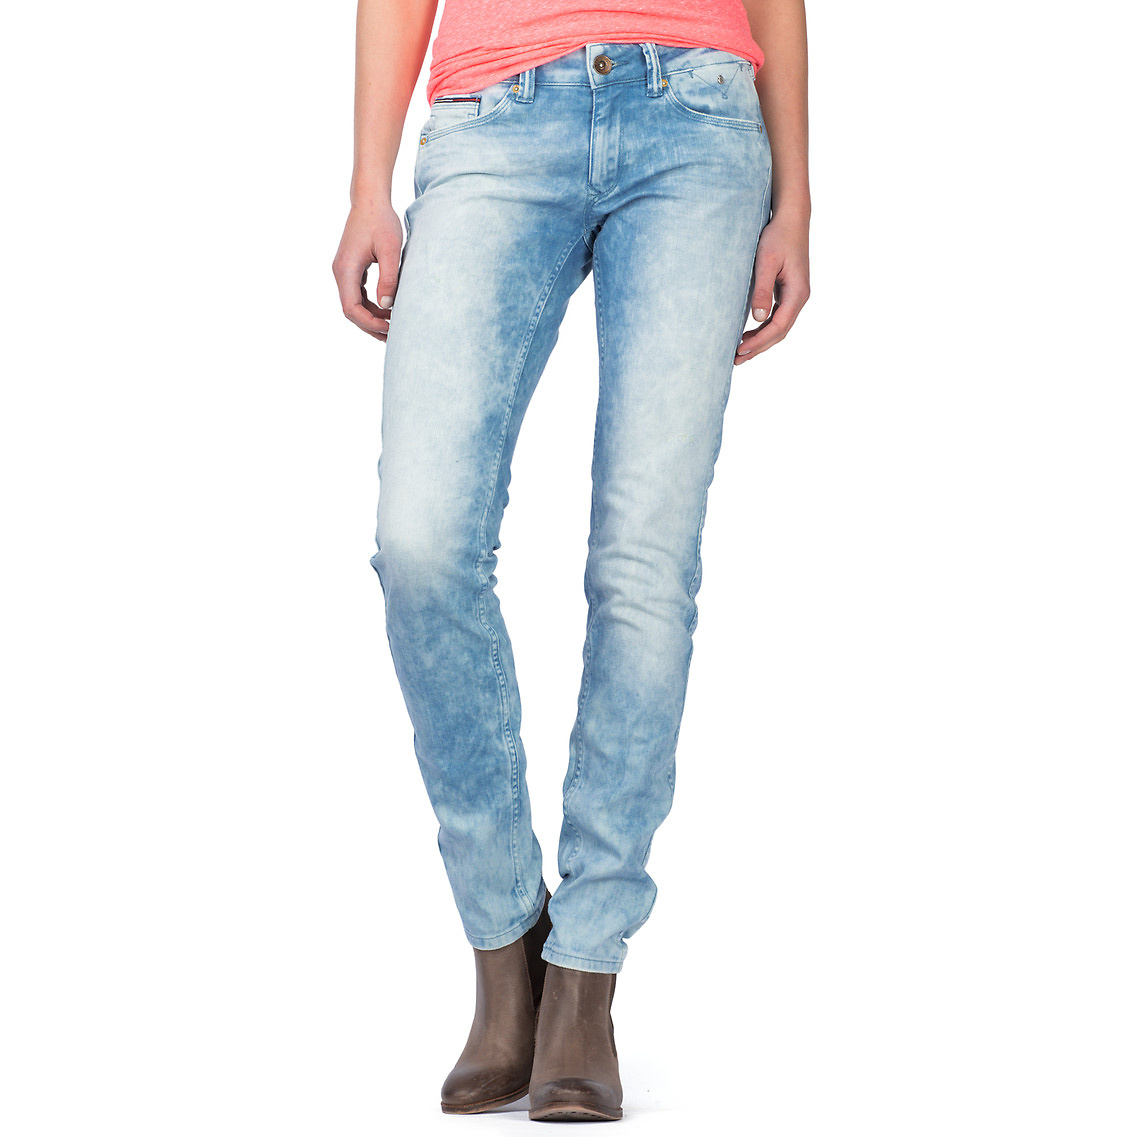 a85c3548 Tommy Hilfiger Sophie Skinny Fit Jeans in Blue - Lyst